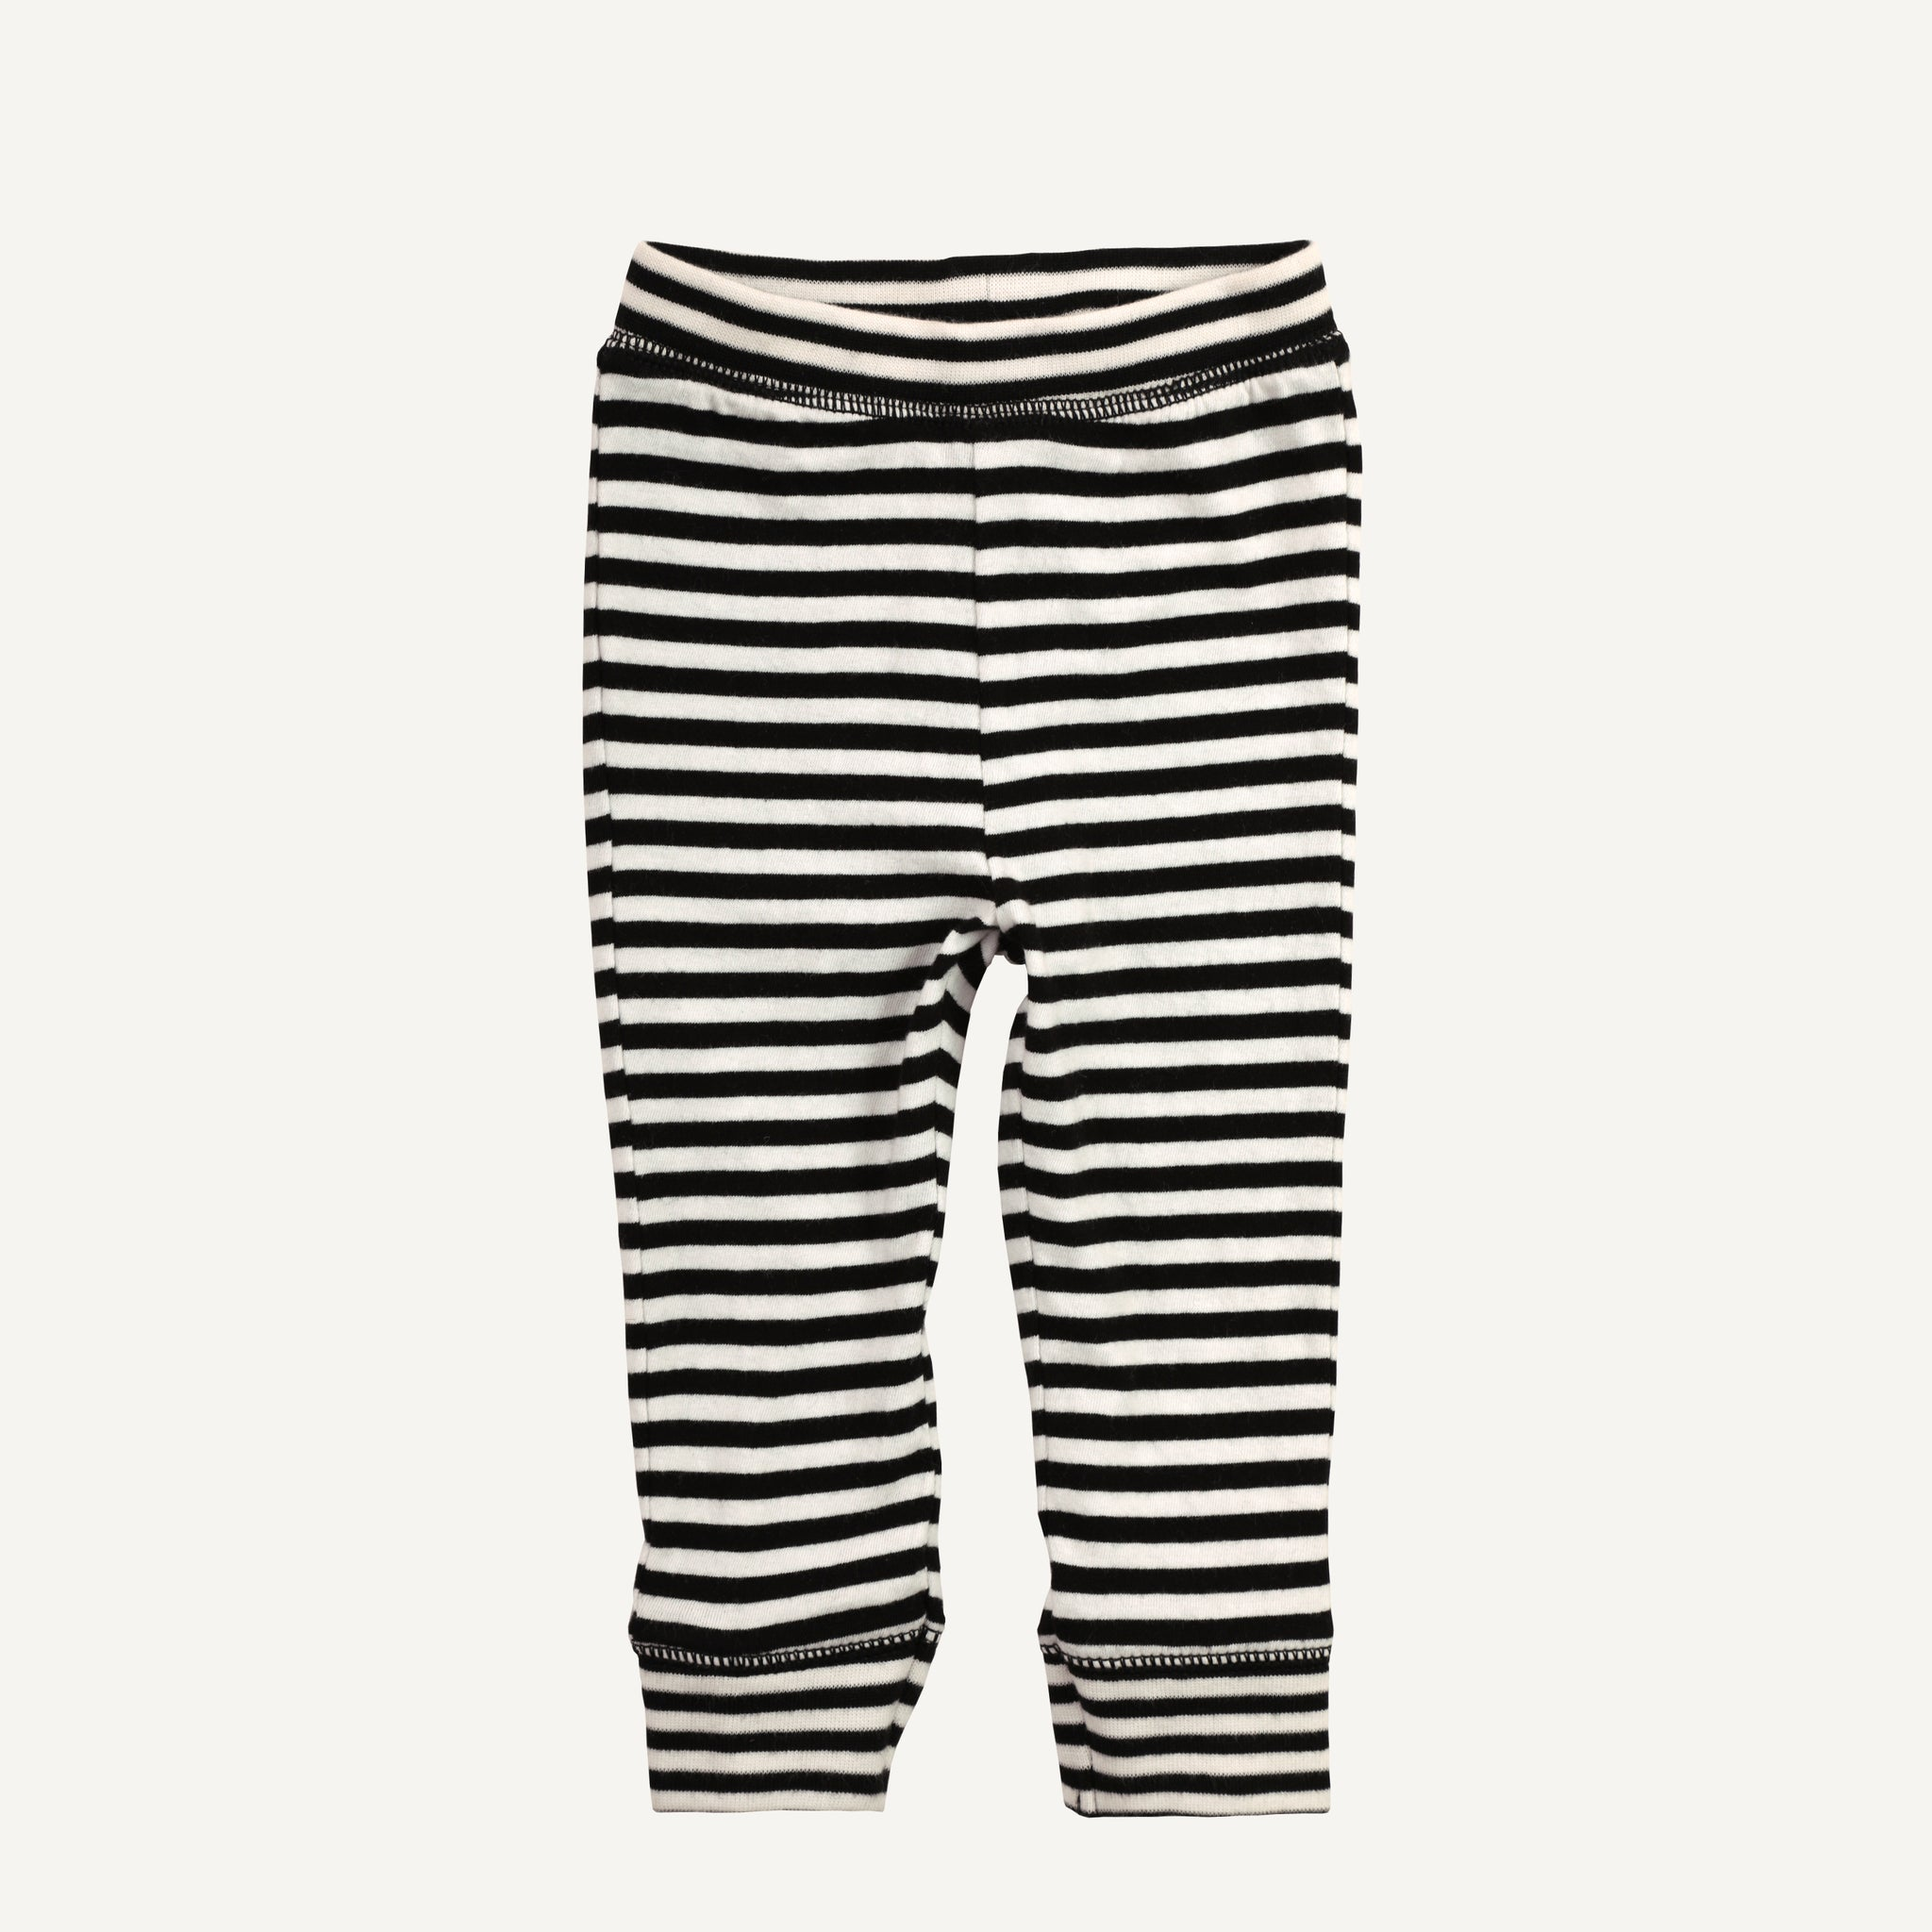 GOAT MILK BABY THERMAL PANT